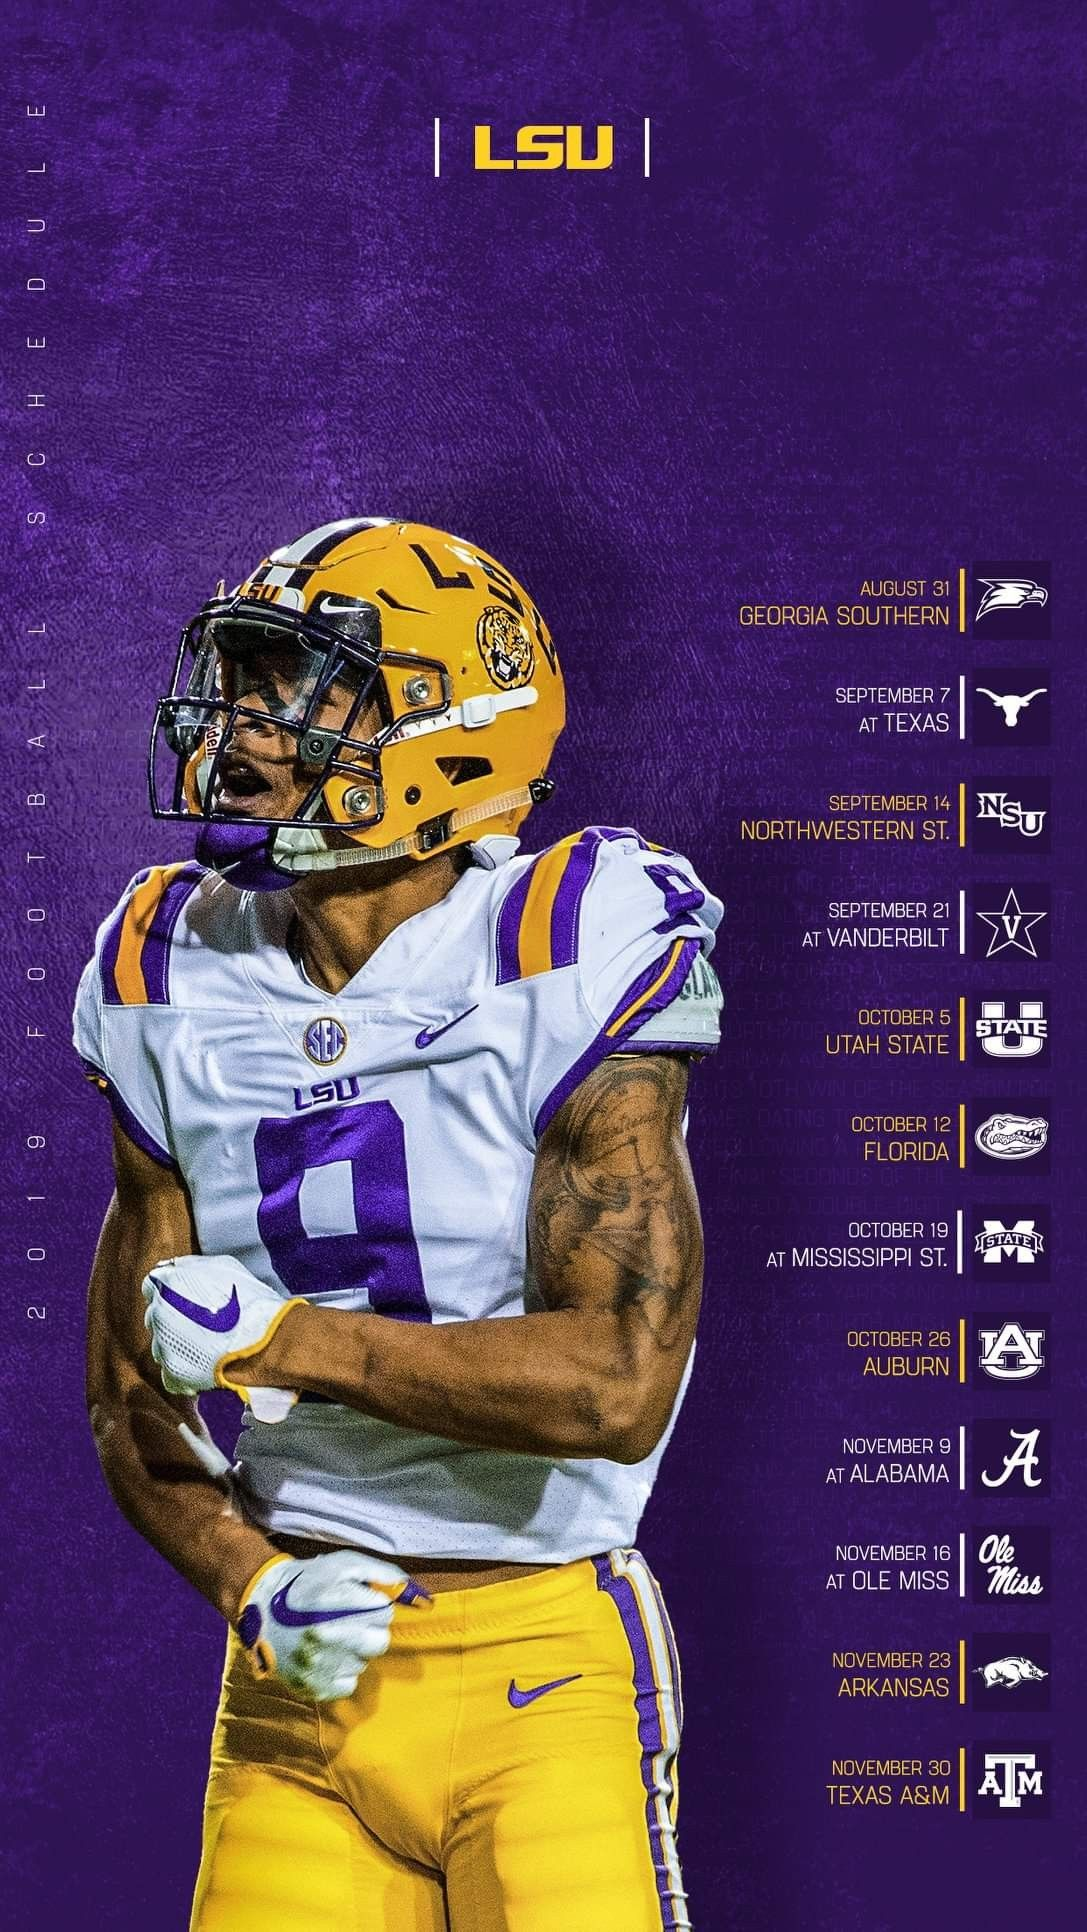 Pin By Drunken Chef On Geaux Tigers College Sports Graphics Sports Design Inspiration Football Design